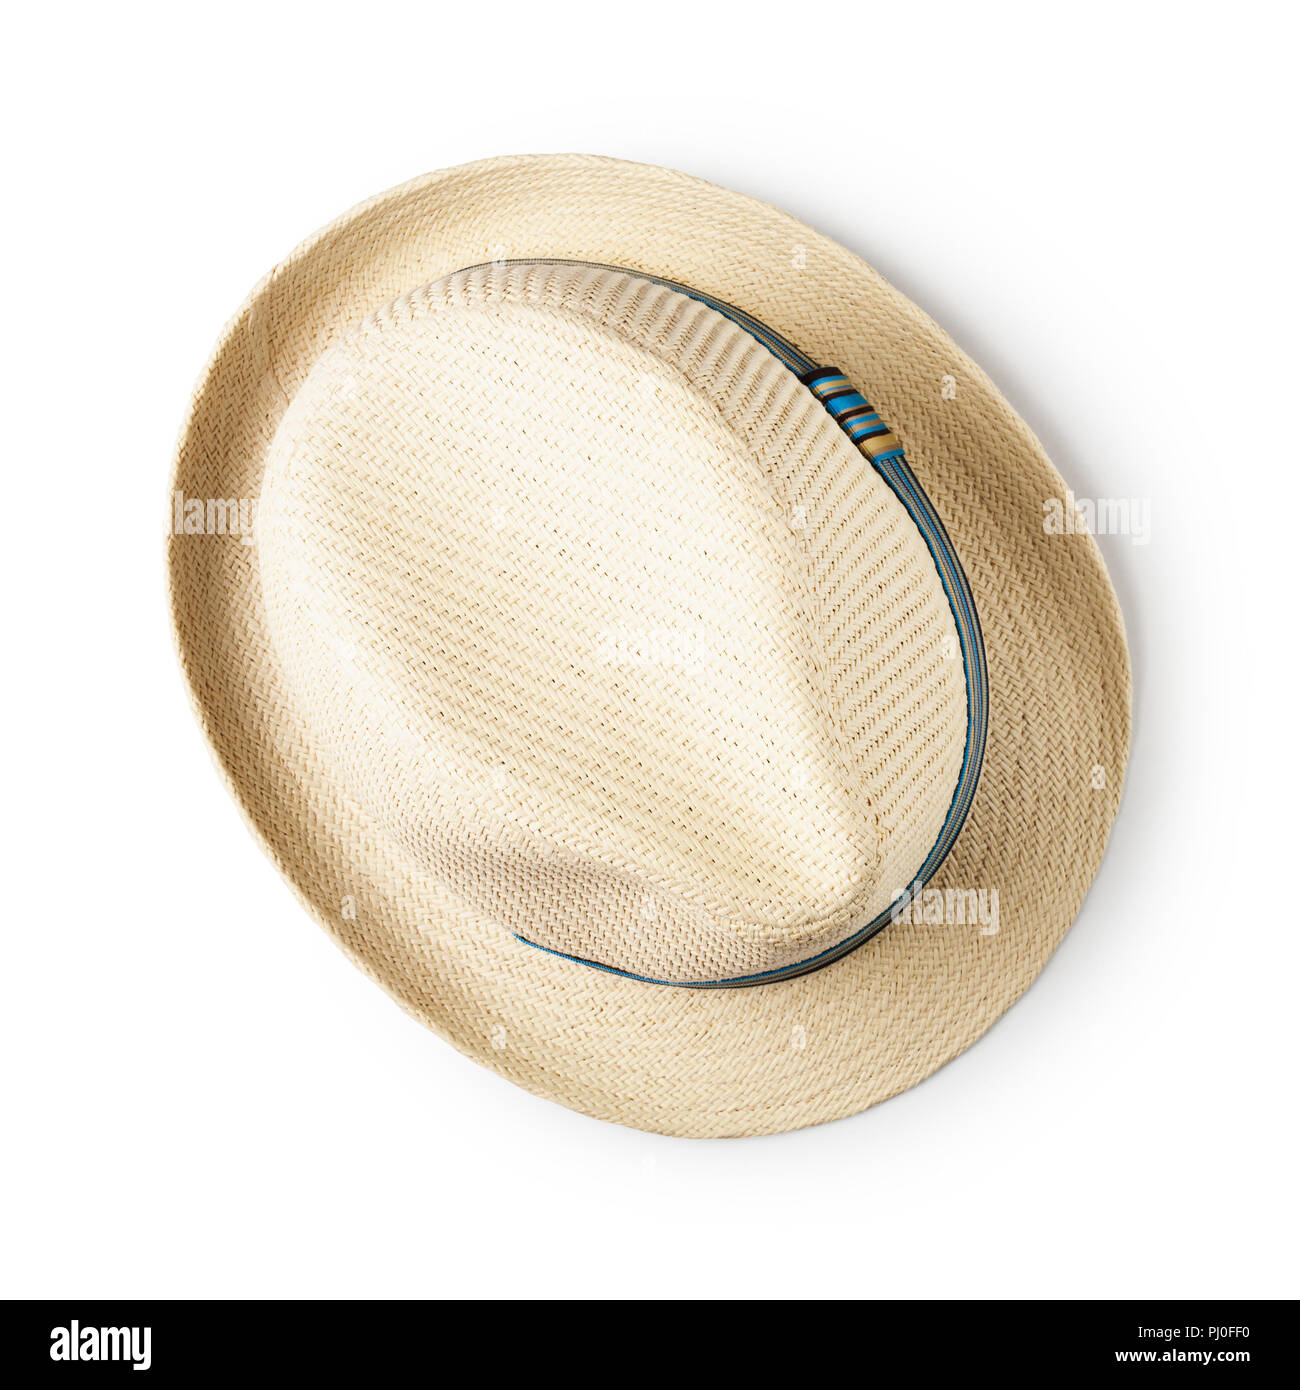 d77e62ea2d8 Straw hat with blue ribbon isolated on white background